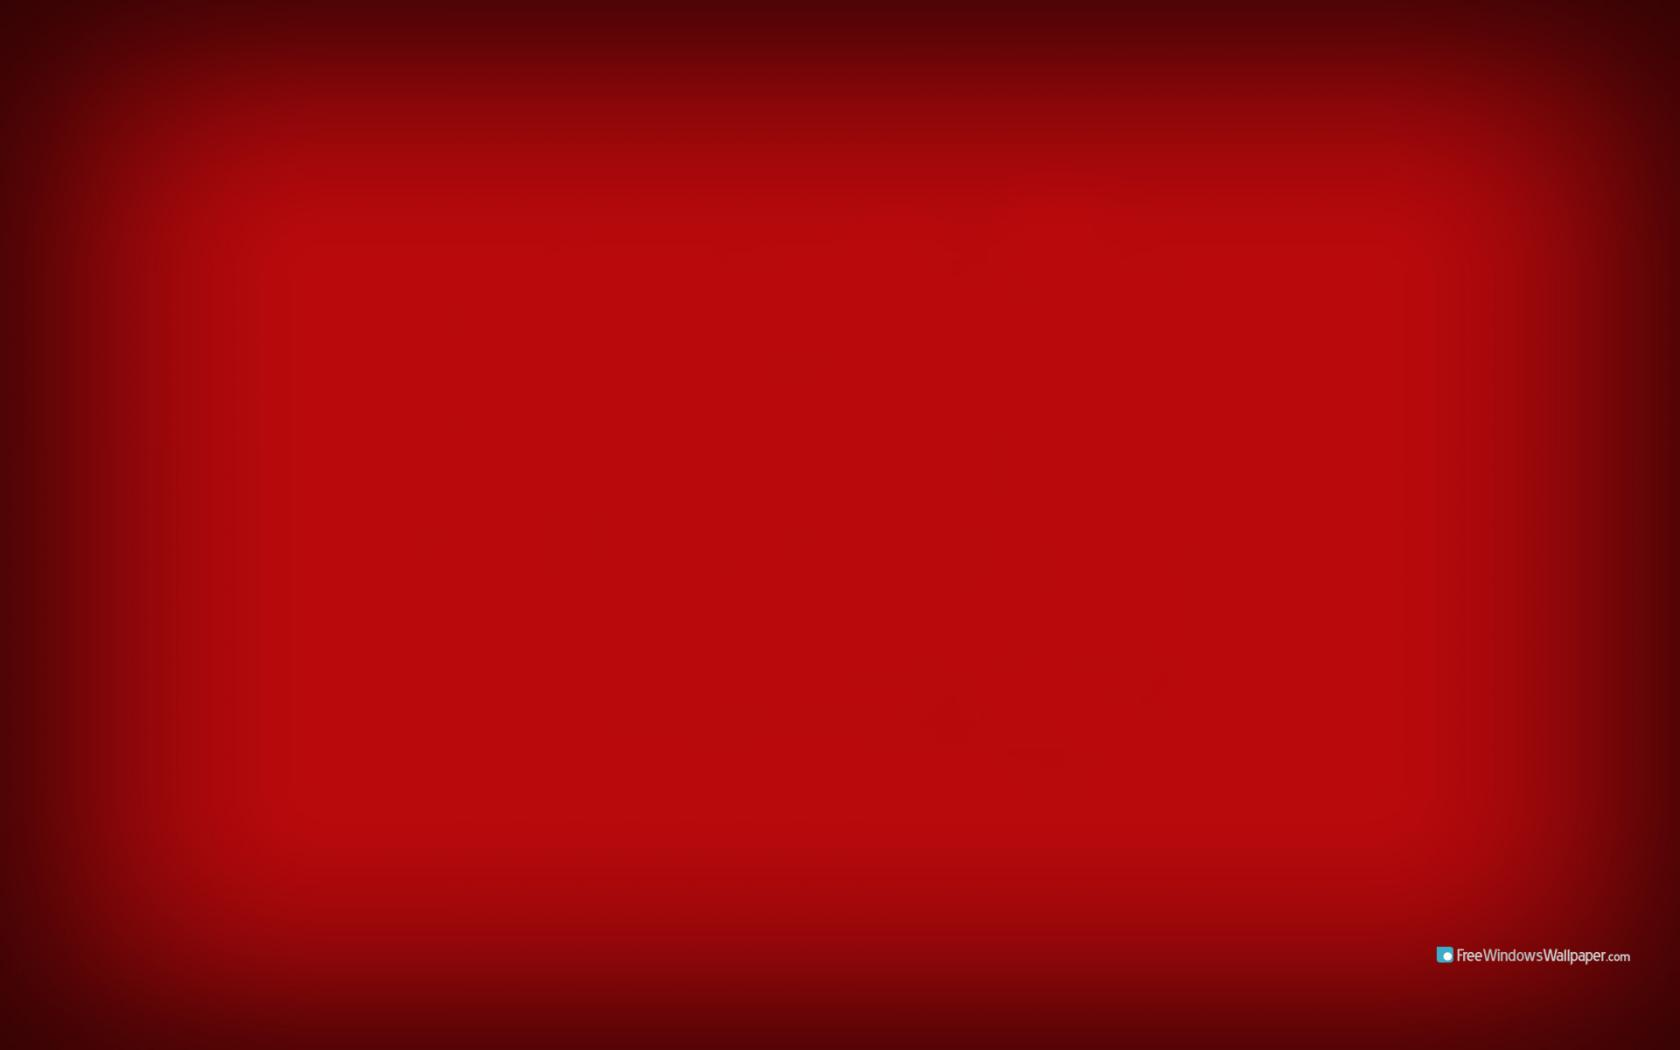 1680x1050 Red Computer Wallpaper Solid Red Wallpaper 1680x1050